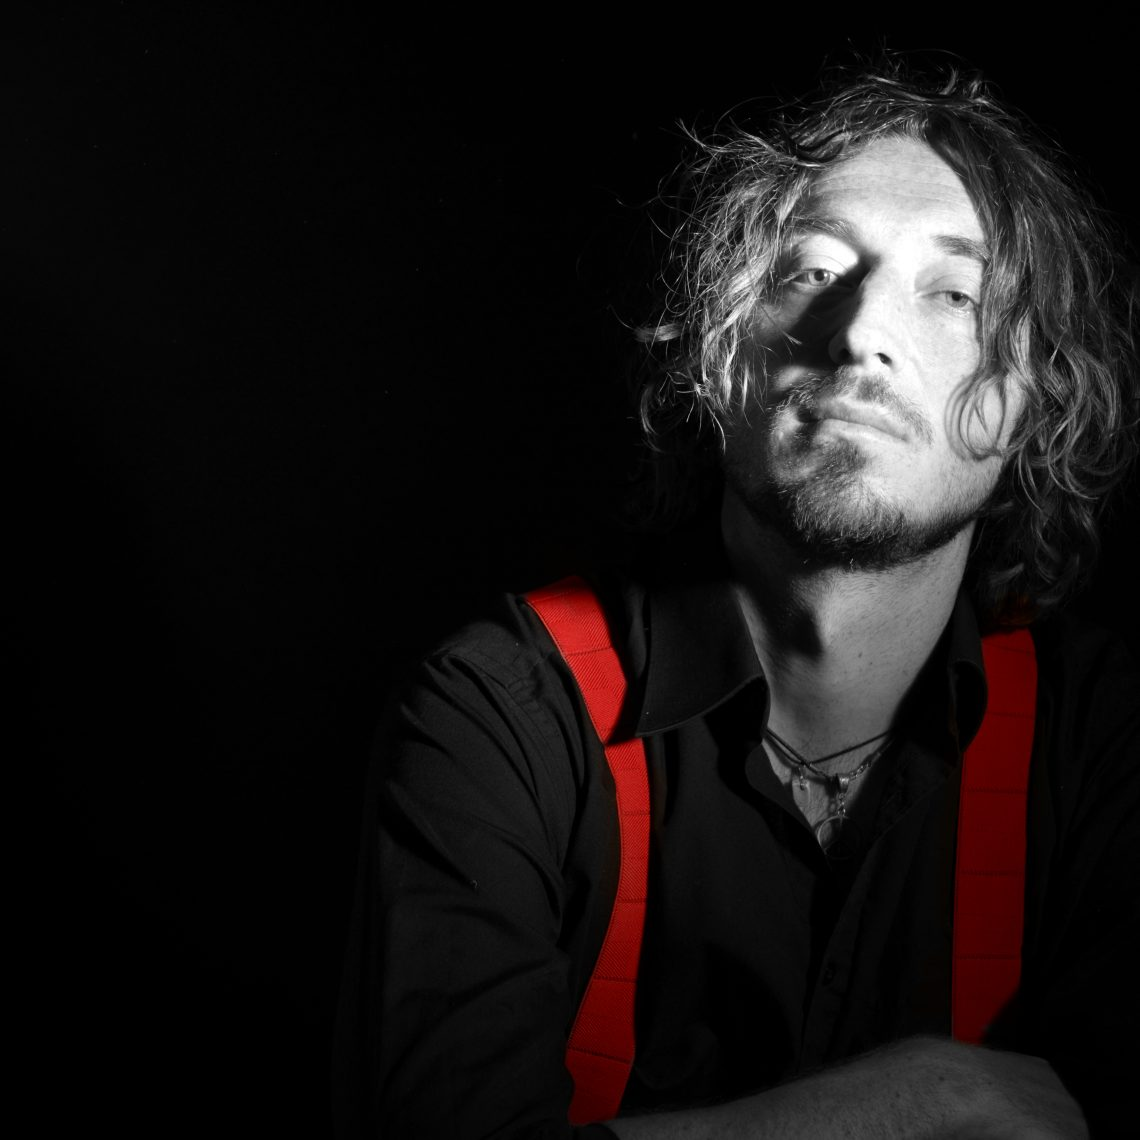 Wille and the Bandits' Frontman Releases single and reveals video 'Houses on the Sand' to Help the Homeless: Video, Single and EP Now Out!